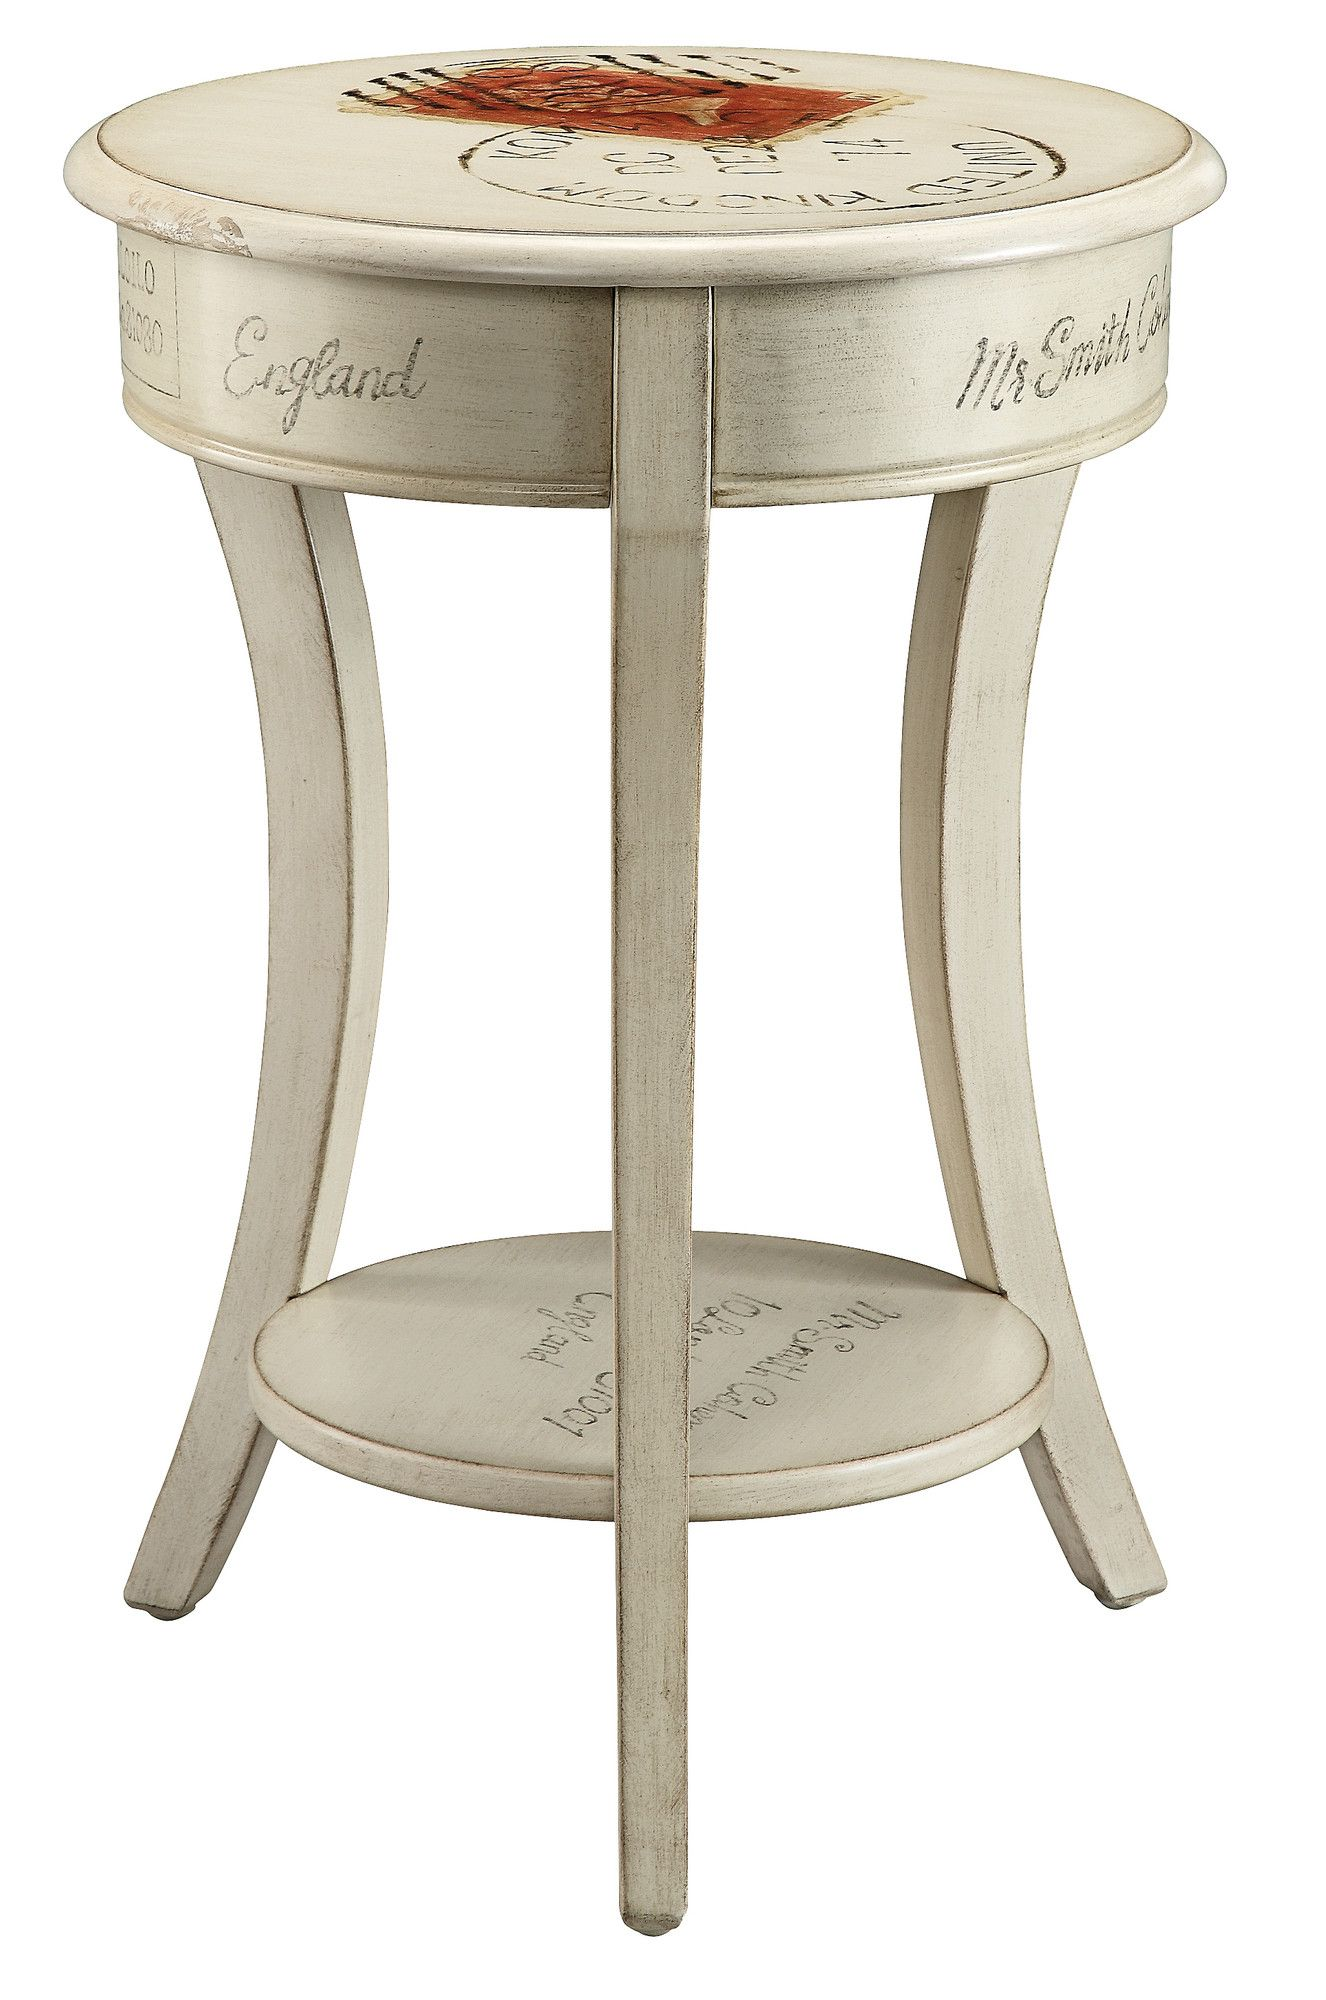 the outrageous beautiful end table with curved legs mira road painted treasures accent curves philippa round navy tablecloth used furniture calgary kohls offers cherry sofa